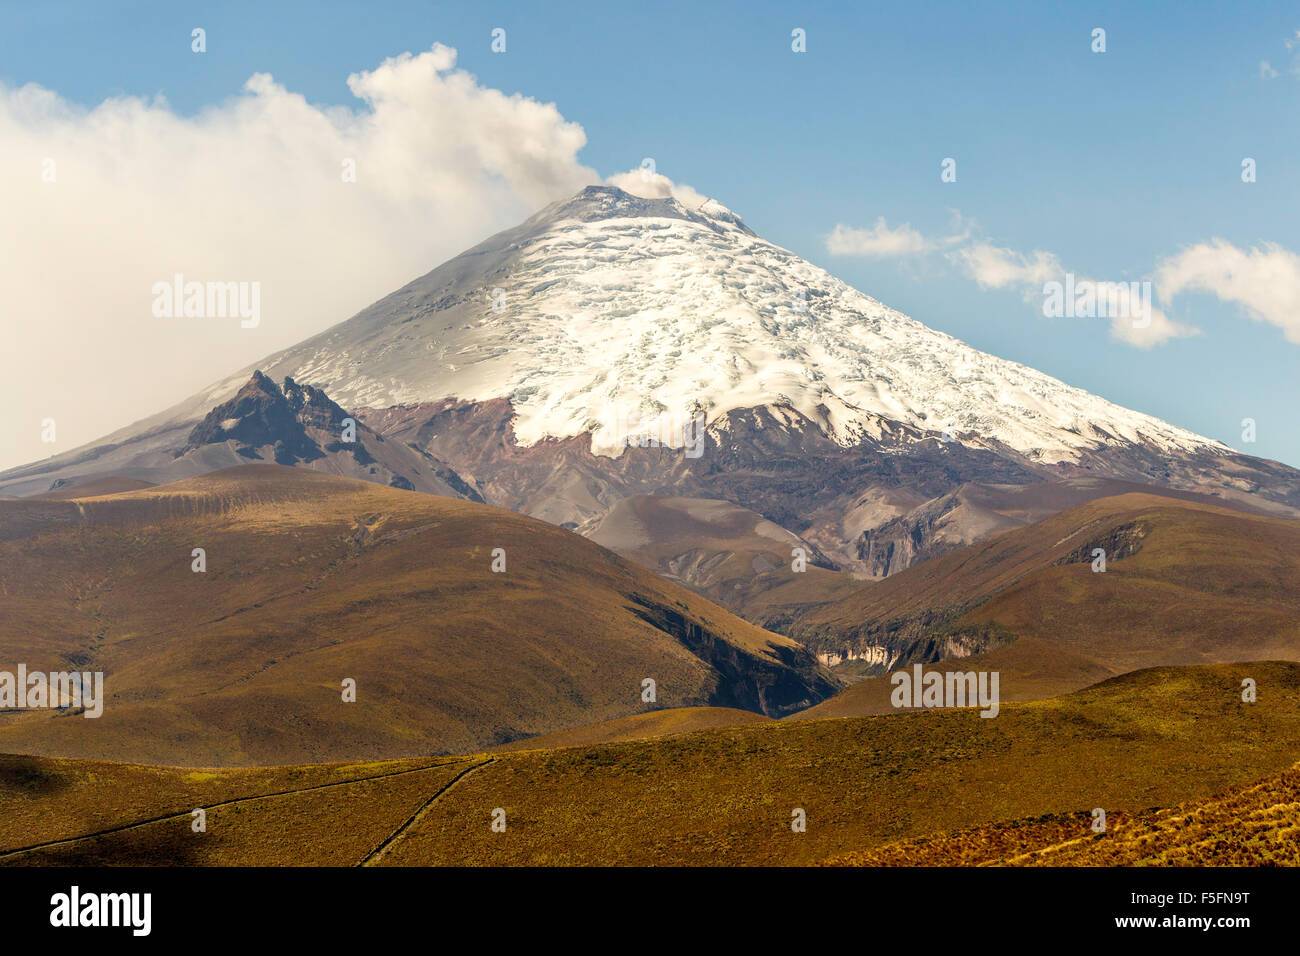 South Side Of Cotopaxi Volcano During 2015 Eruption Vapors Of Water And Ash Blowing Into The Sky - Stock Image